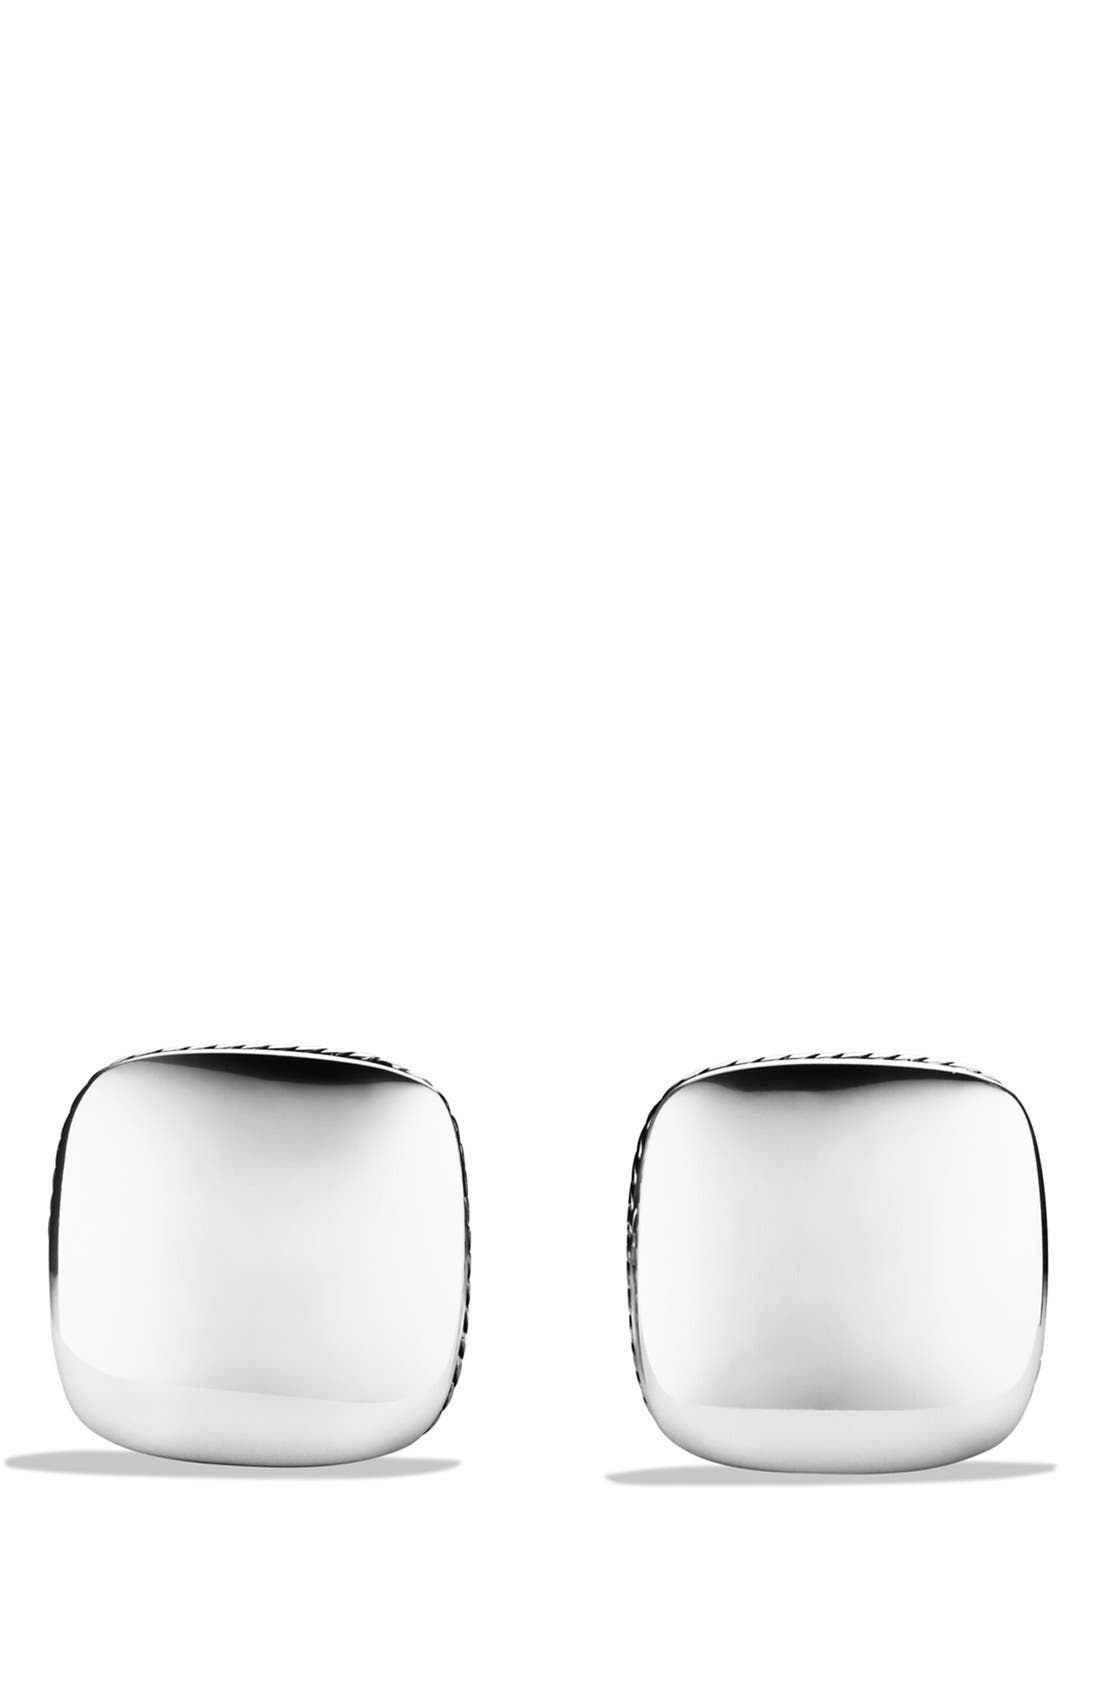 Alternate Image 2  - David Yurman 'Streamline' Cuff links